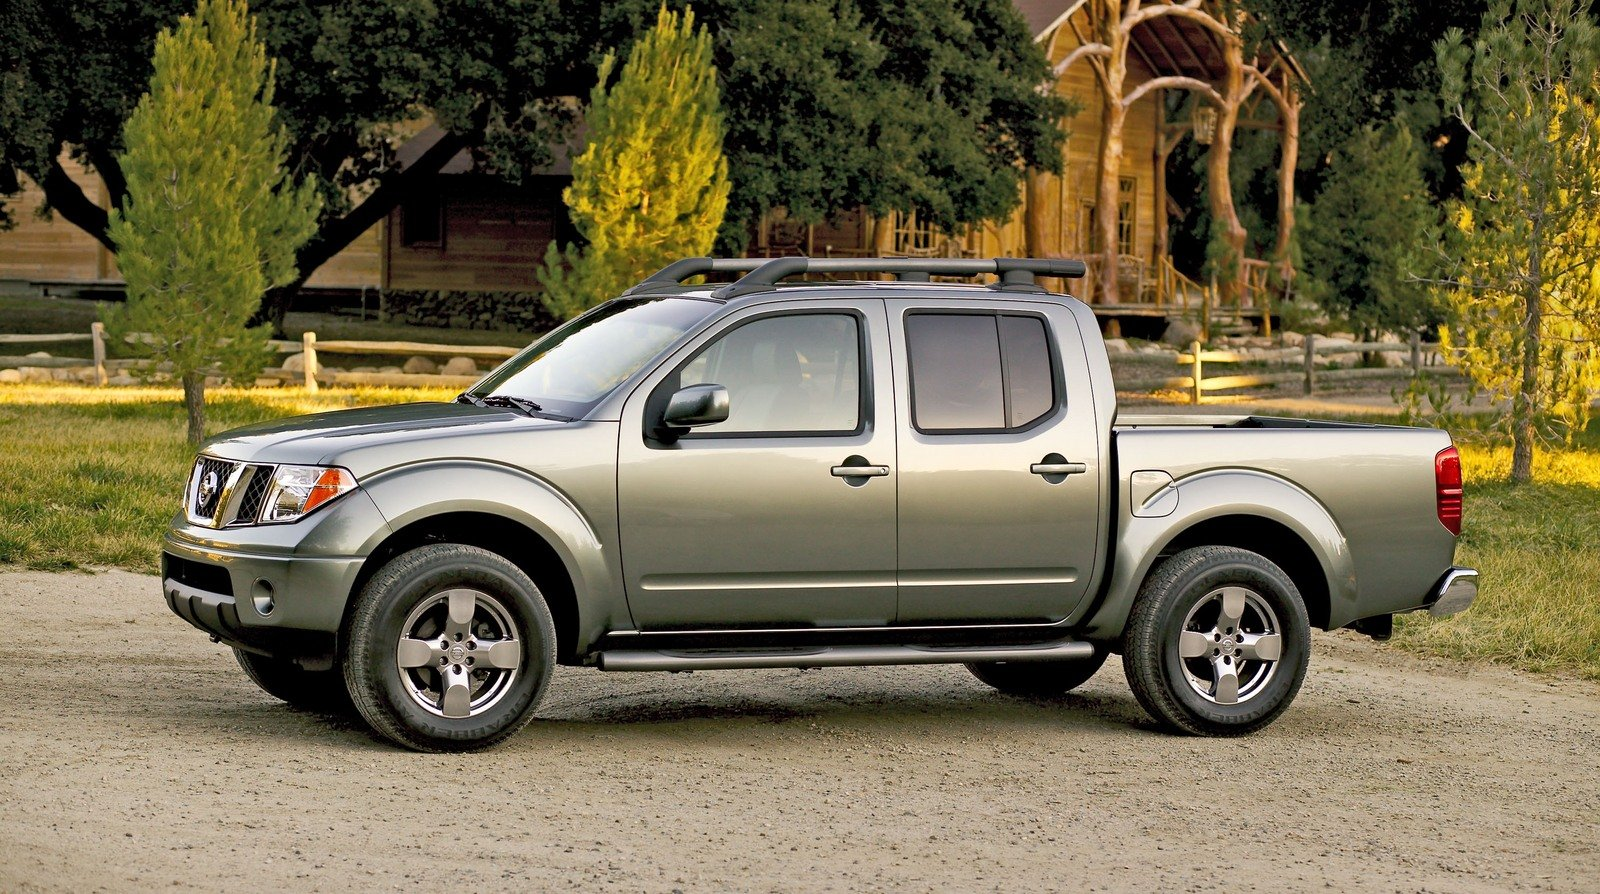 2006 nissan frontier picture 41182 car review top speed. Black Bedroom Furniture Sets. Home Design Ideas